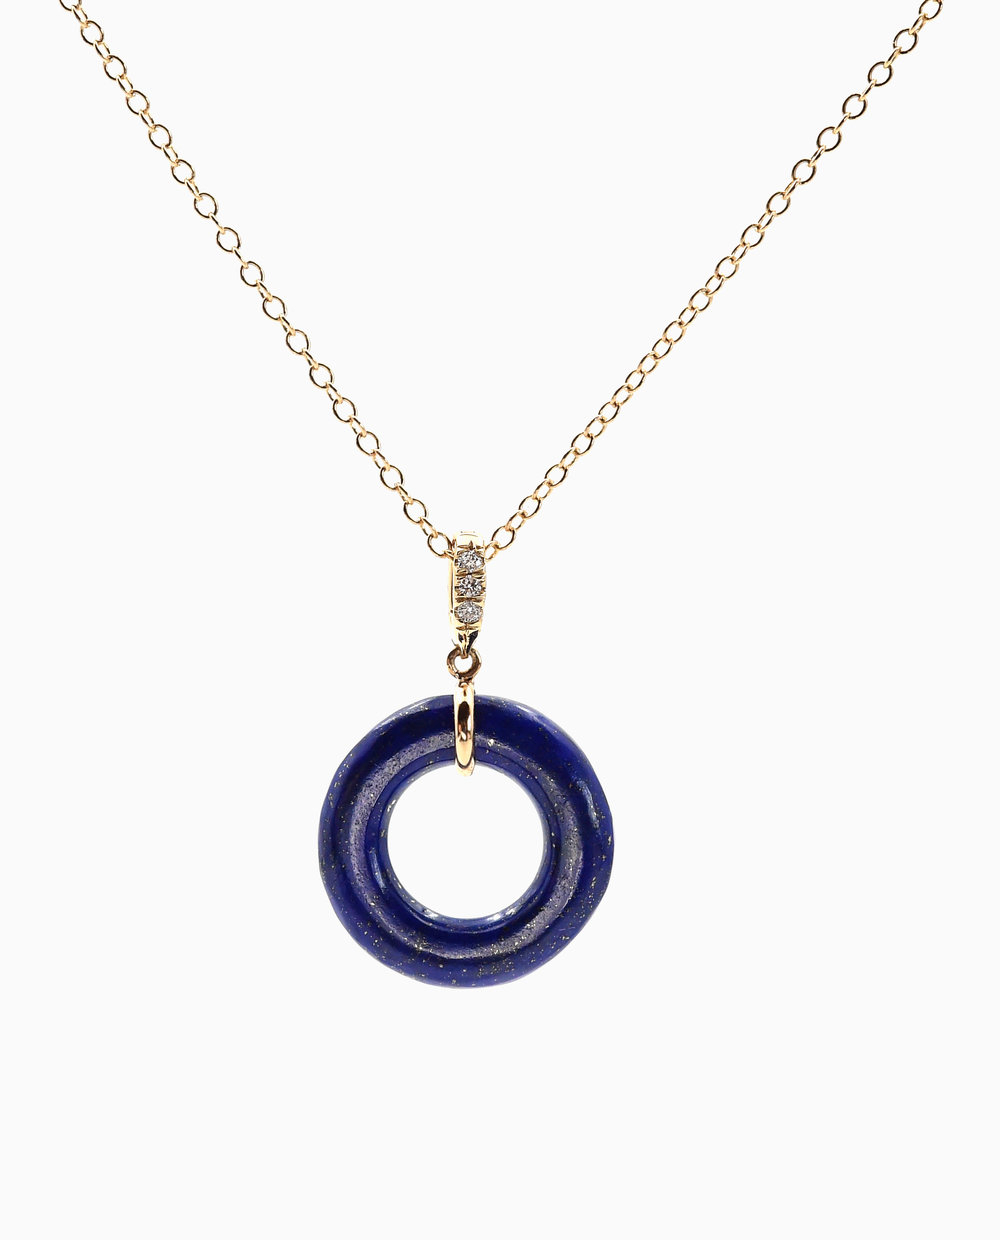 Lapis Munchkin Cable Chain Necklace With Regard To Current Cable Chain Necklaces (View 17 of 25)